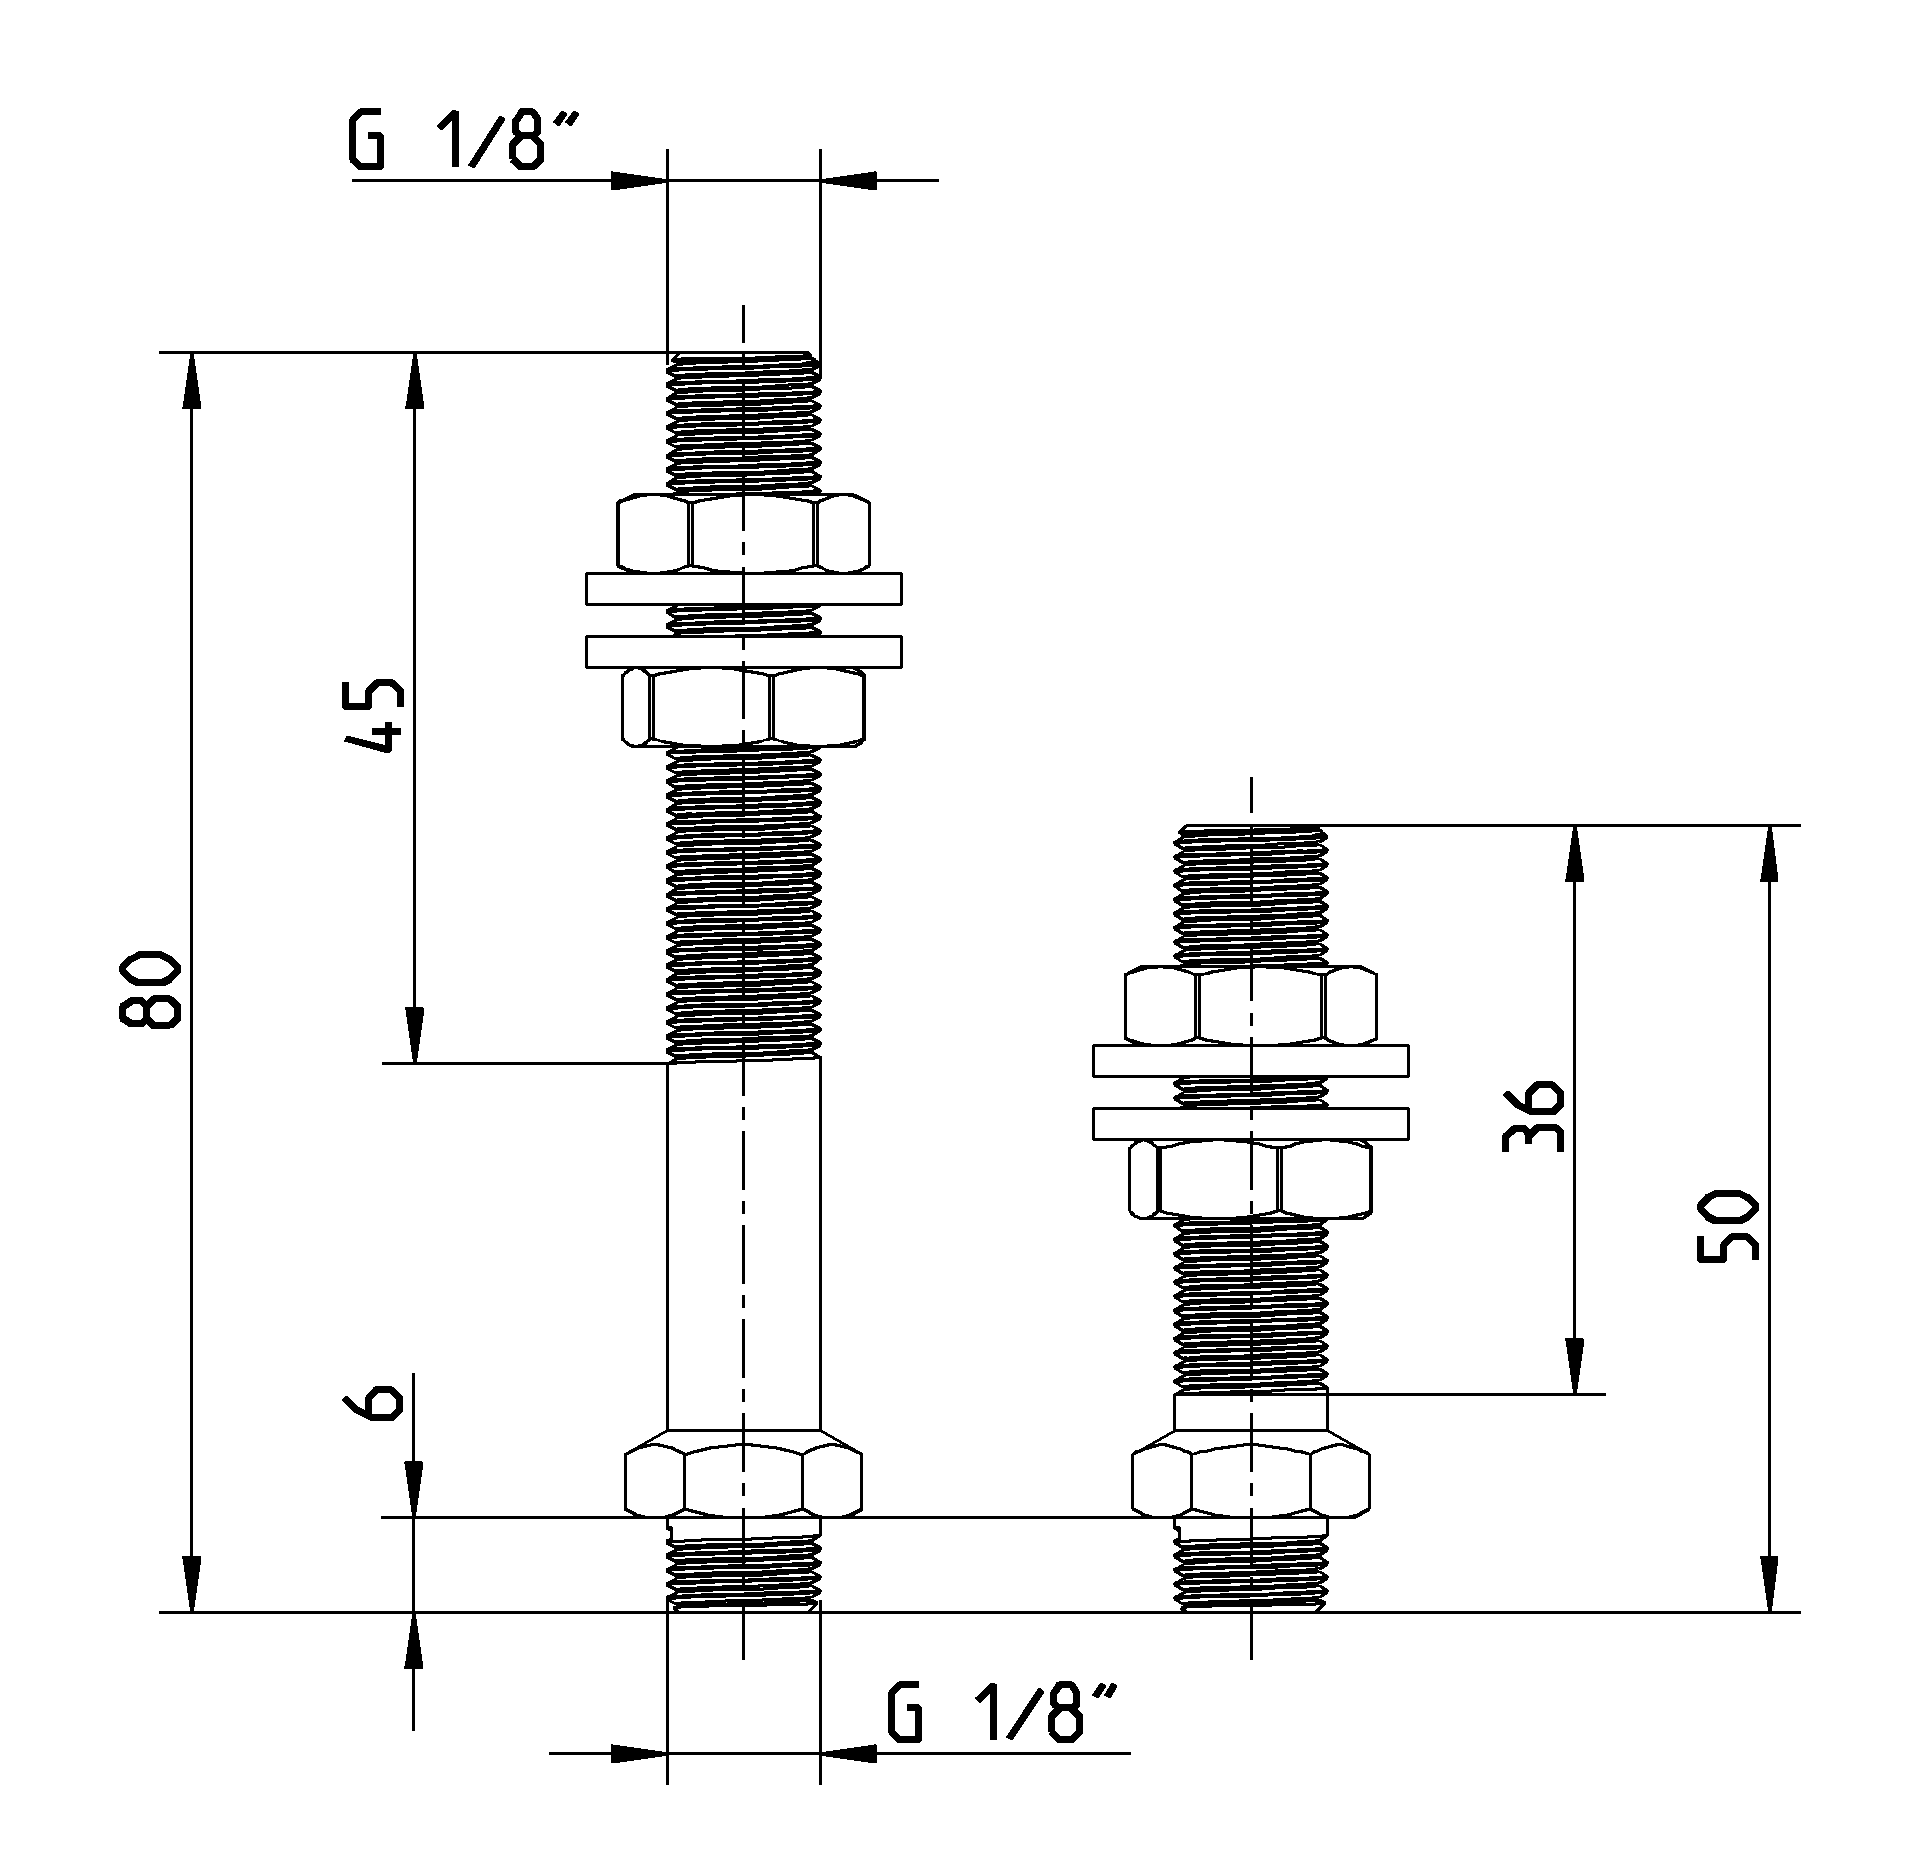 dimensions of mounting screw connection